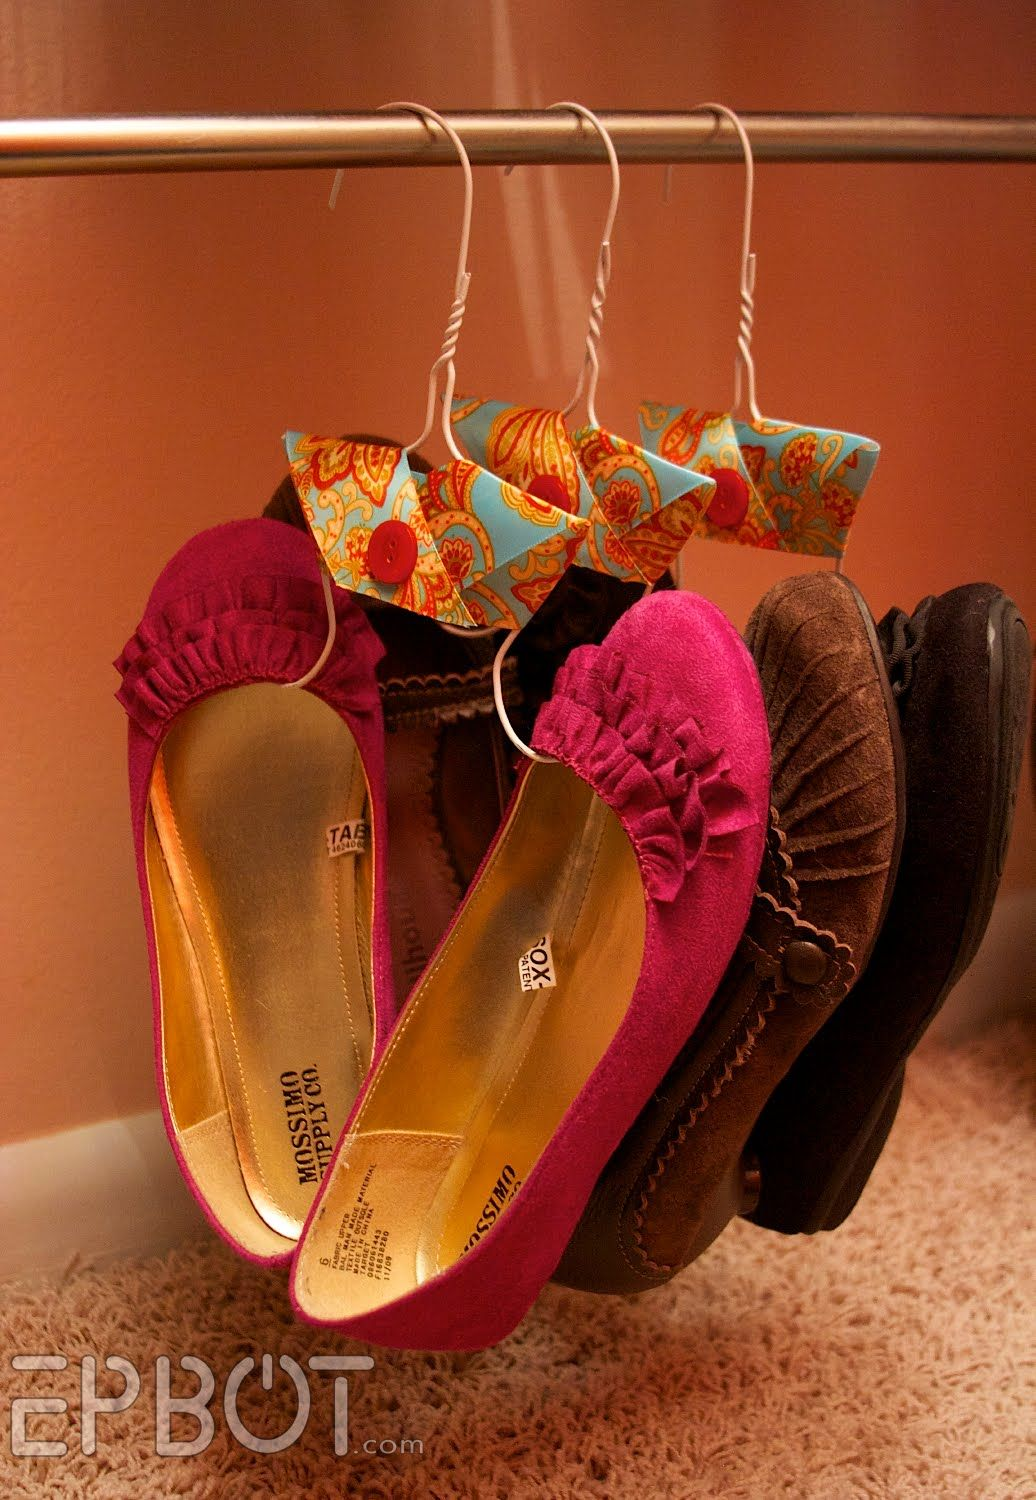 How To Make Shoe Hangers Using A Wire Coat Hanger And Spray Paint This Is A Brilliant Way To